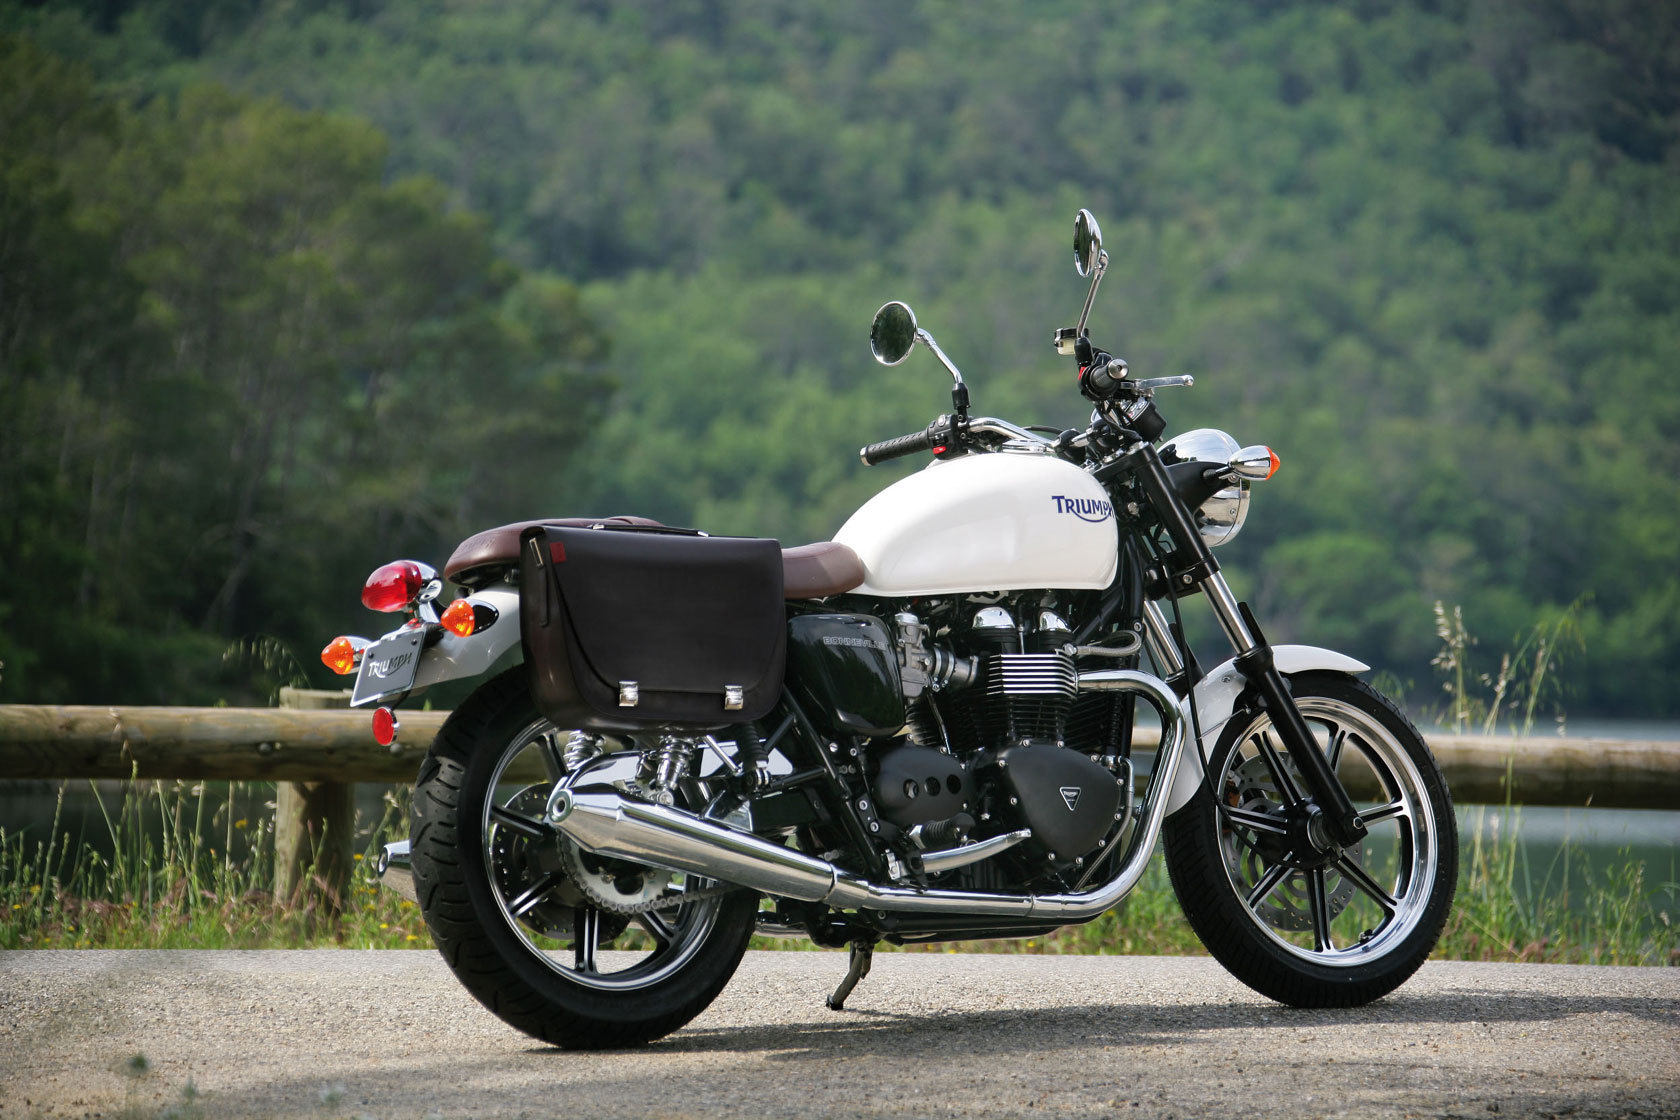 Triumph Bonneville Motorcycles HD Wallpaper